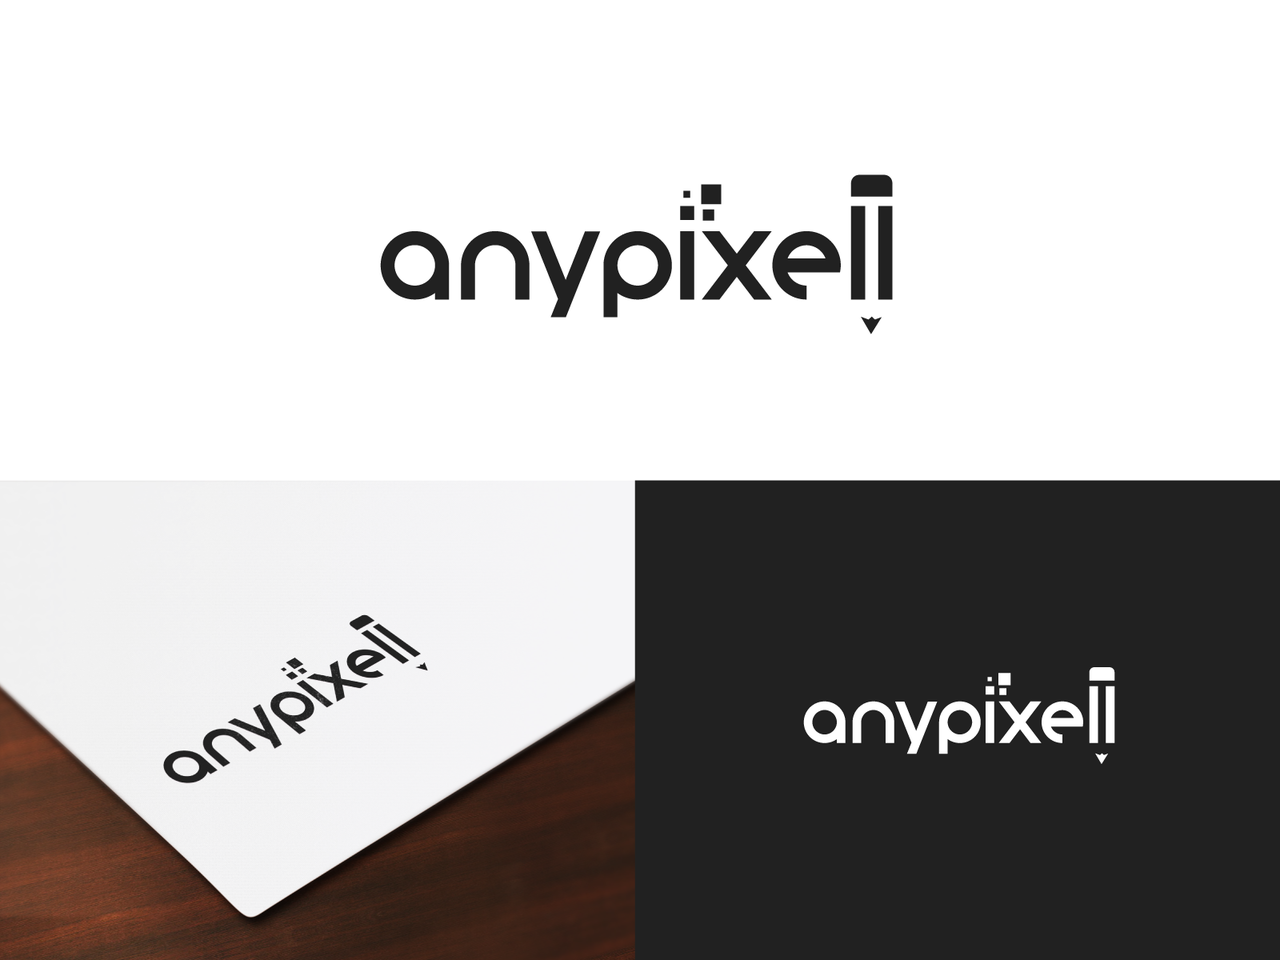 anypixell typography black logo pencil